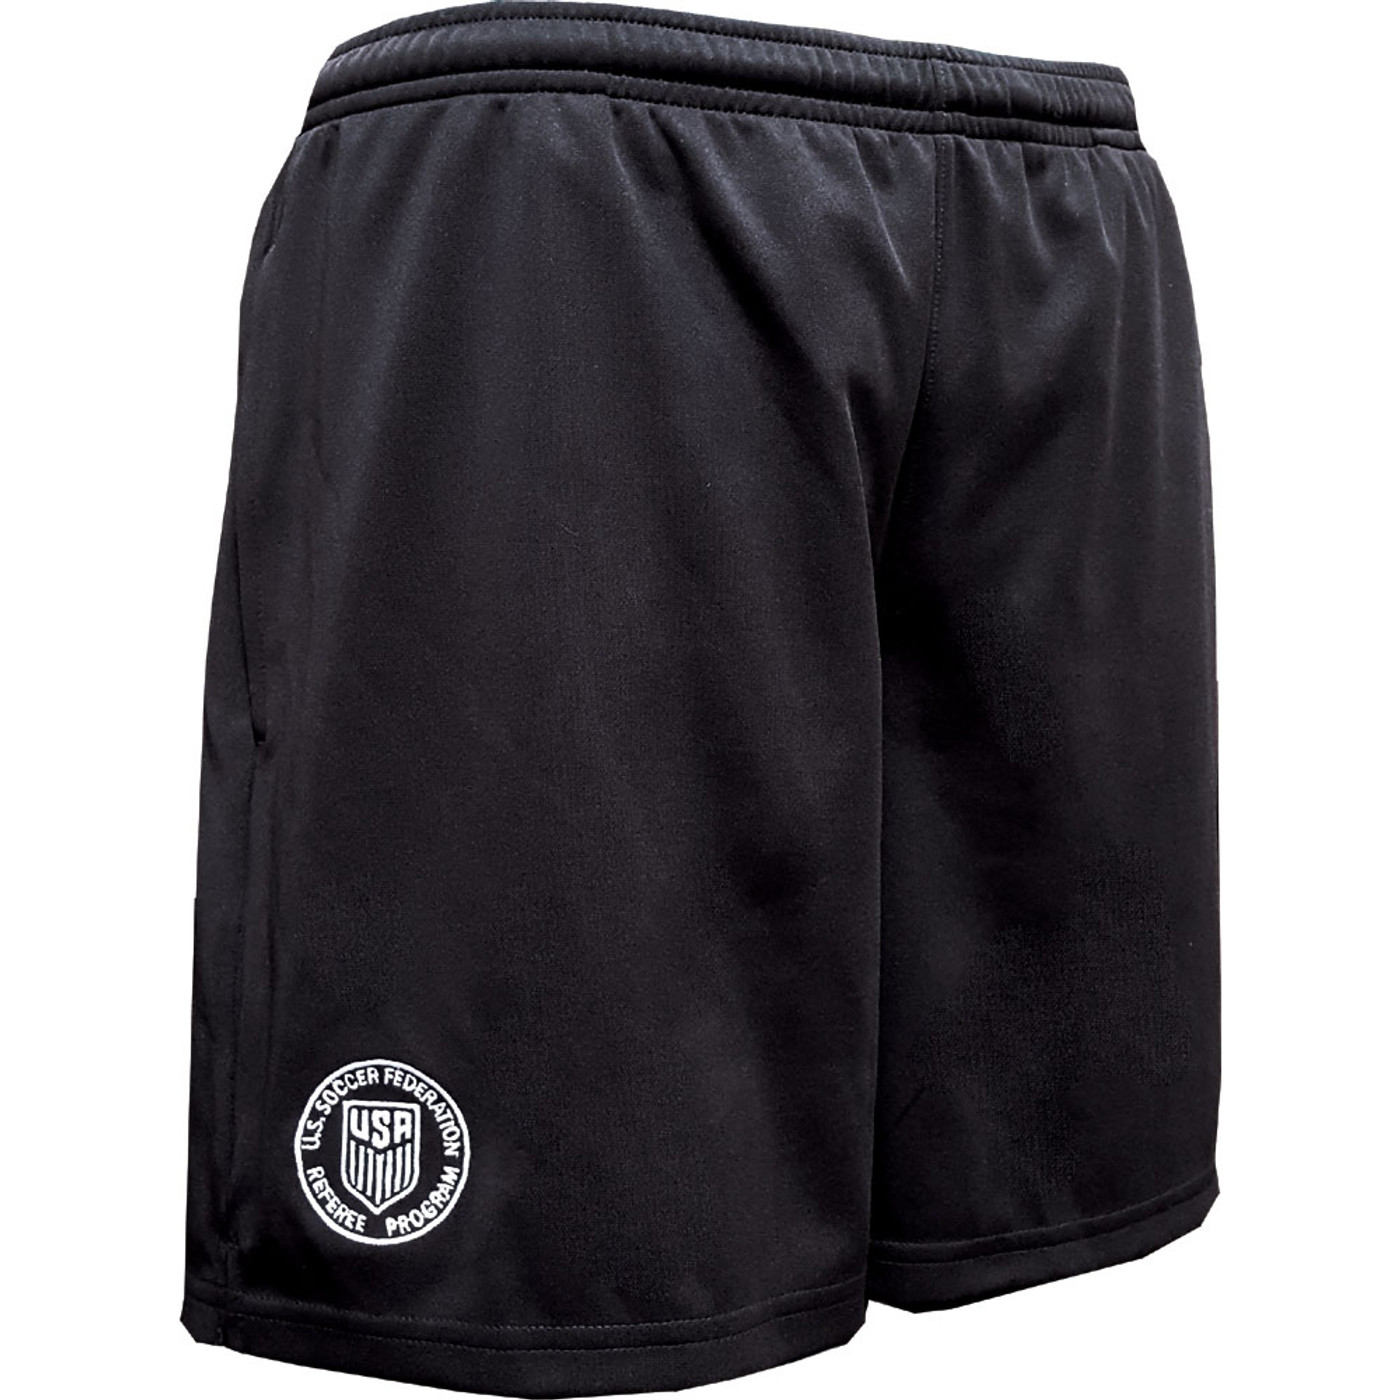 W1066CL The ONLY Official Women's U.S. Soccer Short